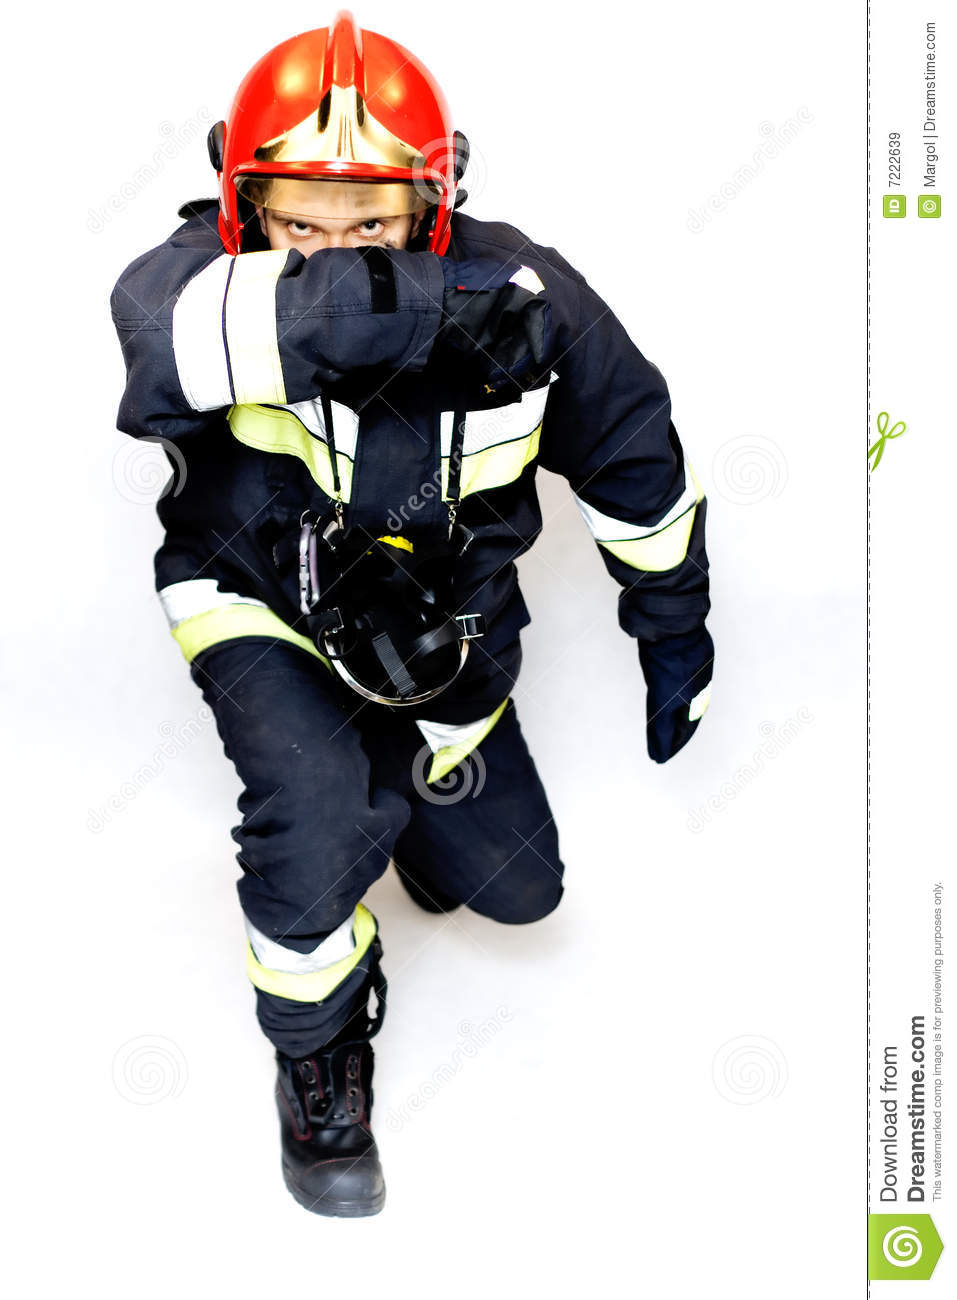 Pictures of fireman in action